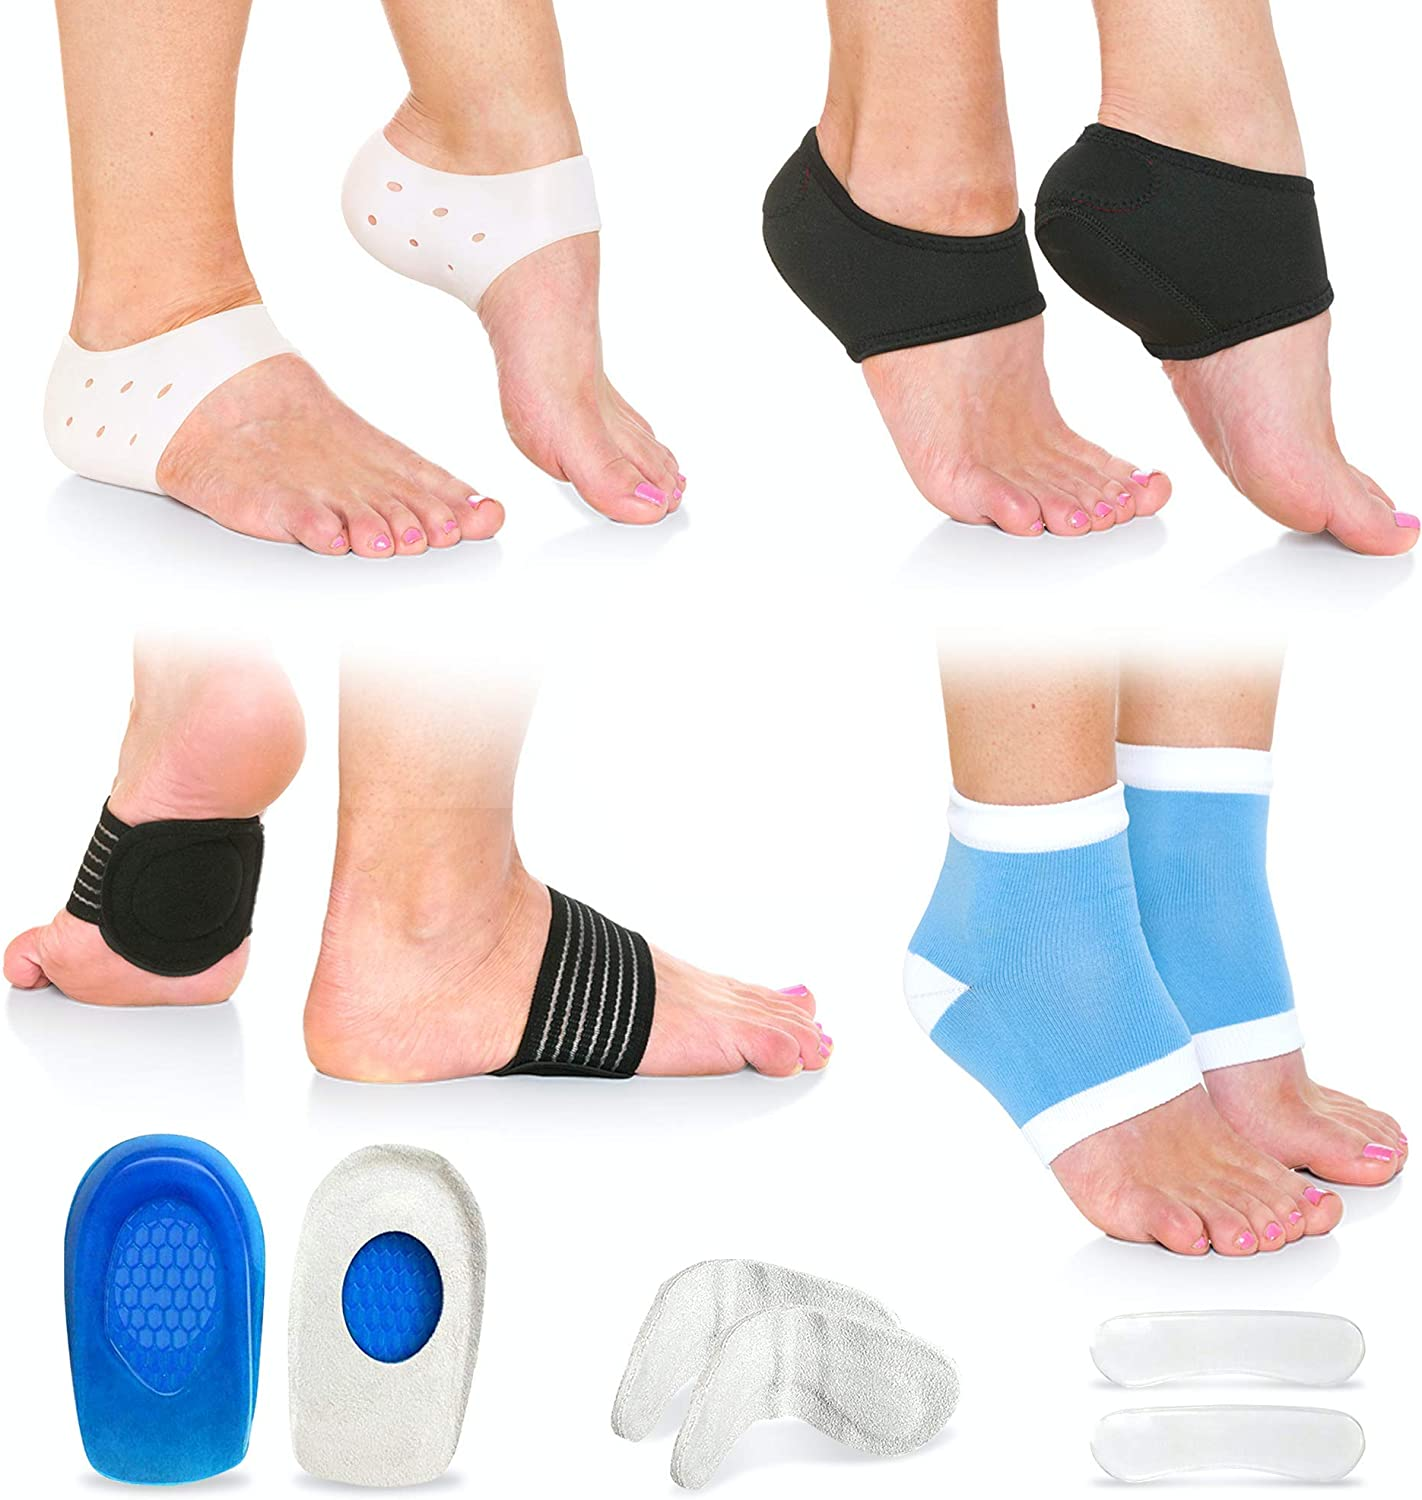 Amazon Com Plantar Fasciitis Foot Pain Relief 14 Piece Kit Premium Planter Fasciitis Support Gel Heel Spur Therapy Wraps Compression Socks Foot Sleeves Arch Supports Heel Cushion Inserts Heel Grips Health